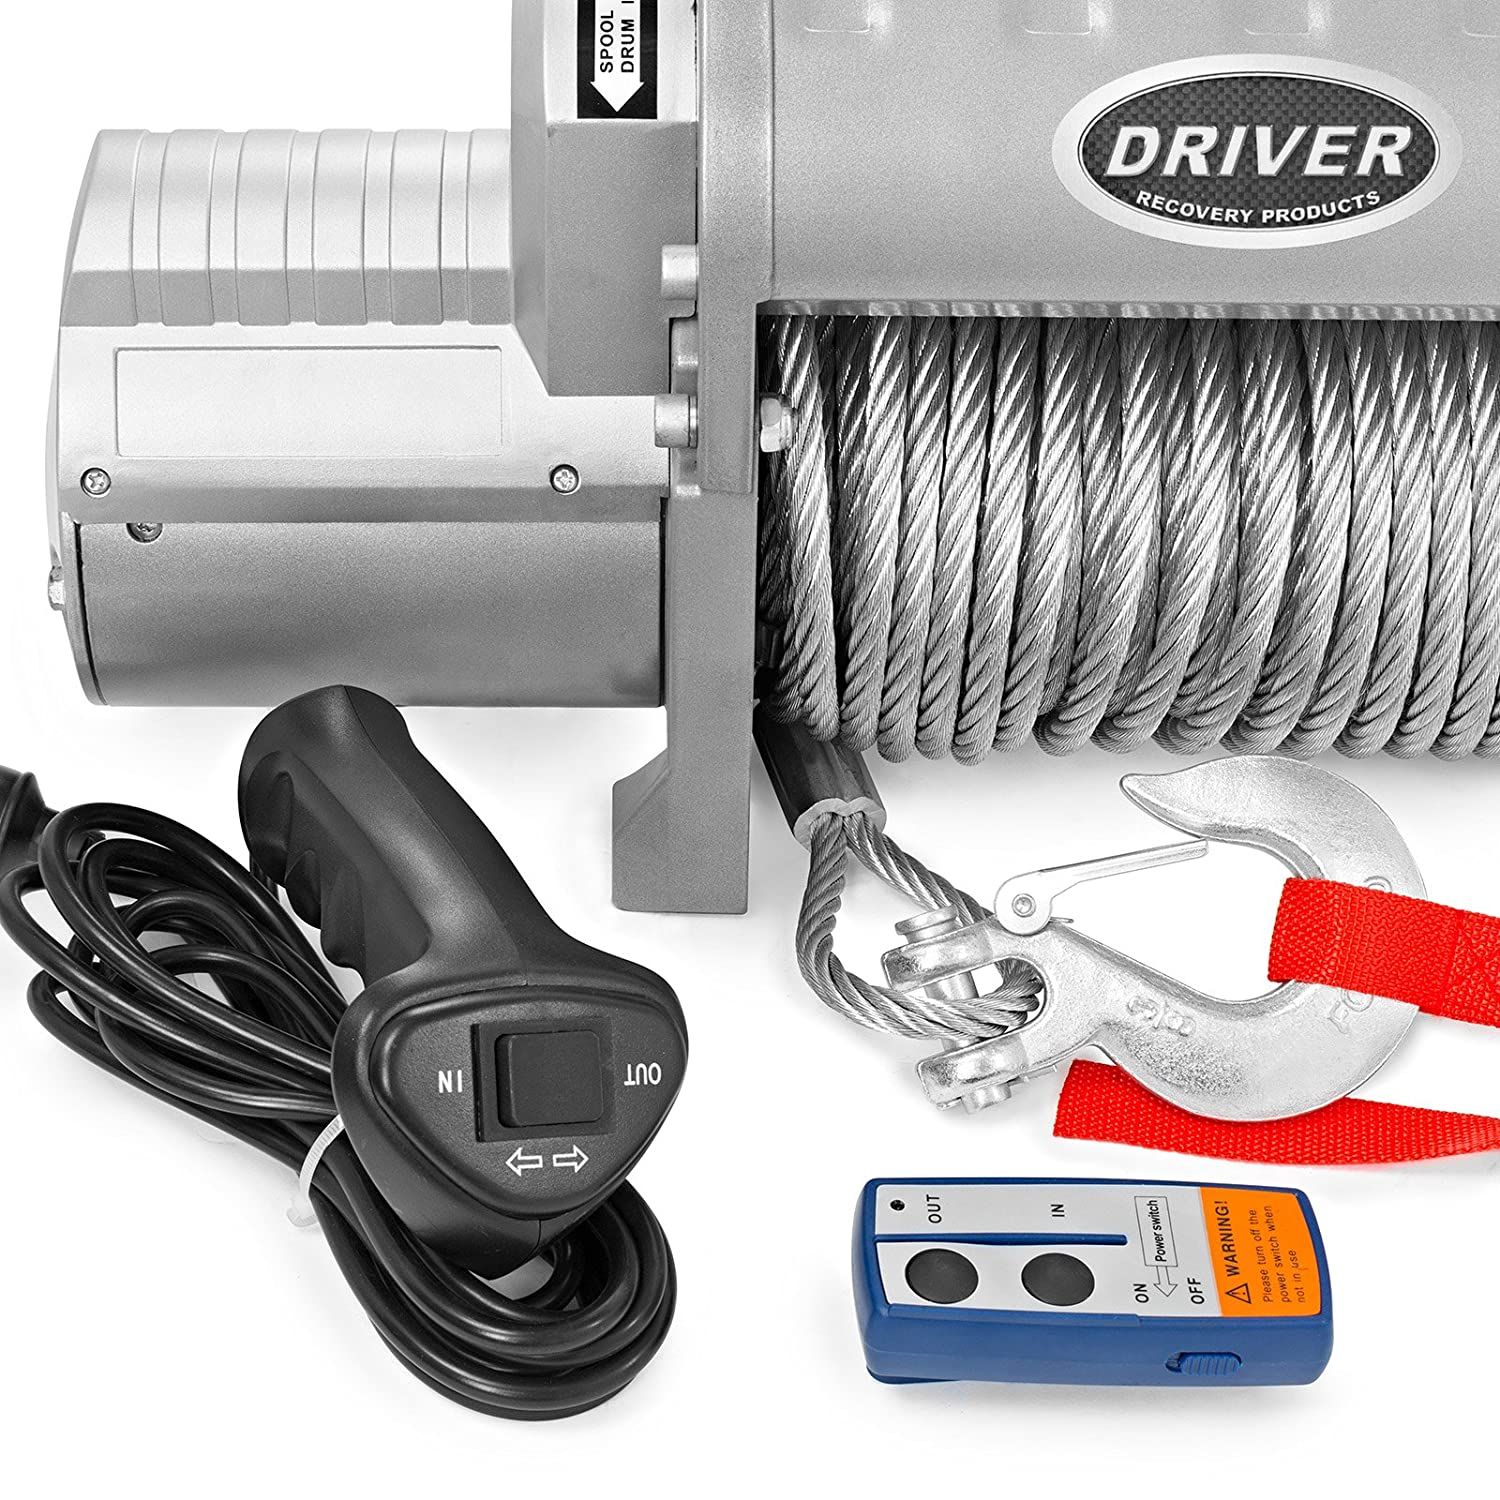 Ld12 Elite Electric Heavy Duty Recovery Winch 12000 Solenoid Switch Wiring Diagram Besides Badland Winches Lbs Capacity Wireless Remote Control By Driver Products Automotive